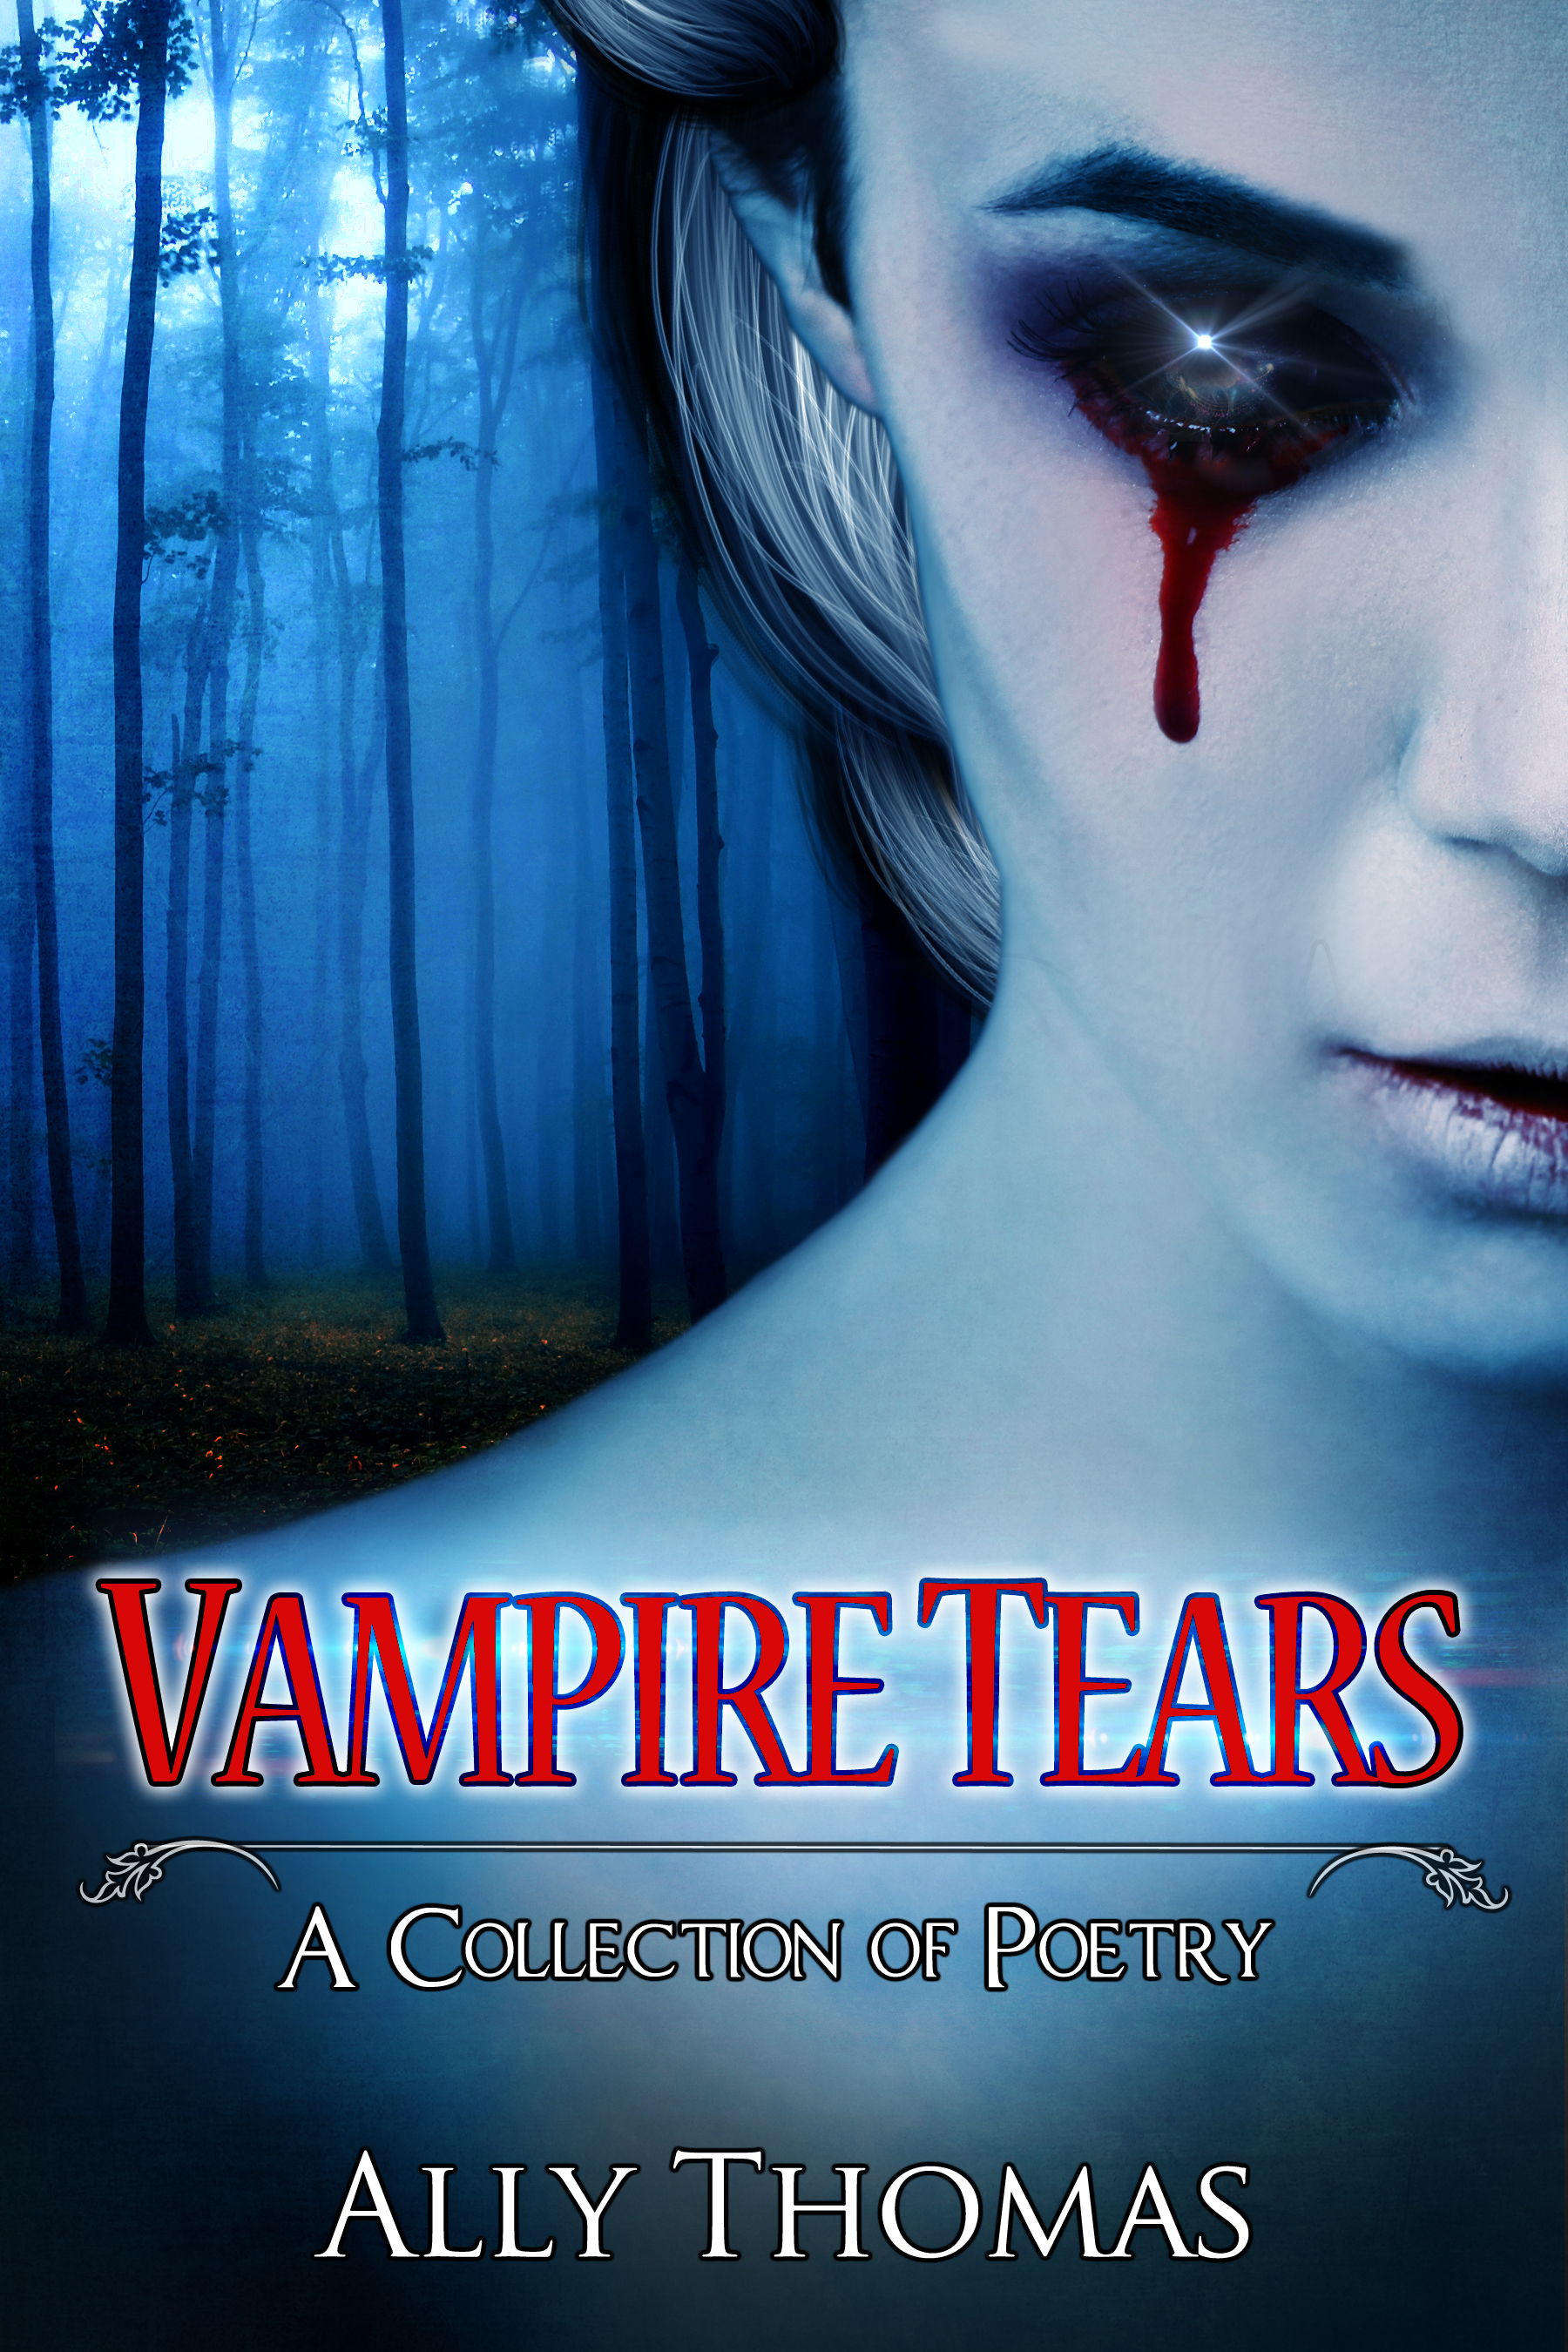 Vampire Tears (A Collection of Poetry), an Ebook by Ally Thomas